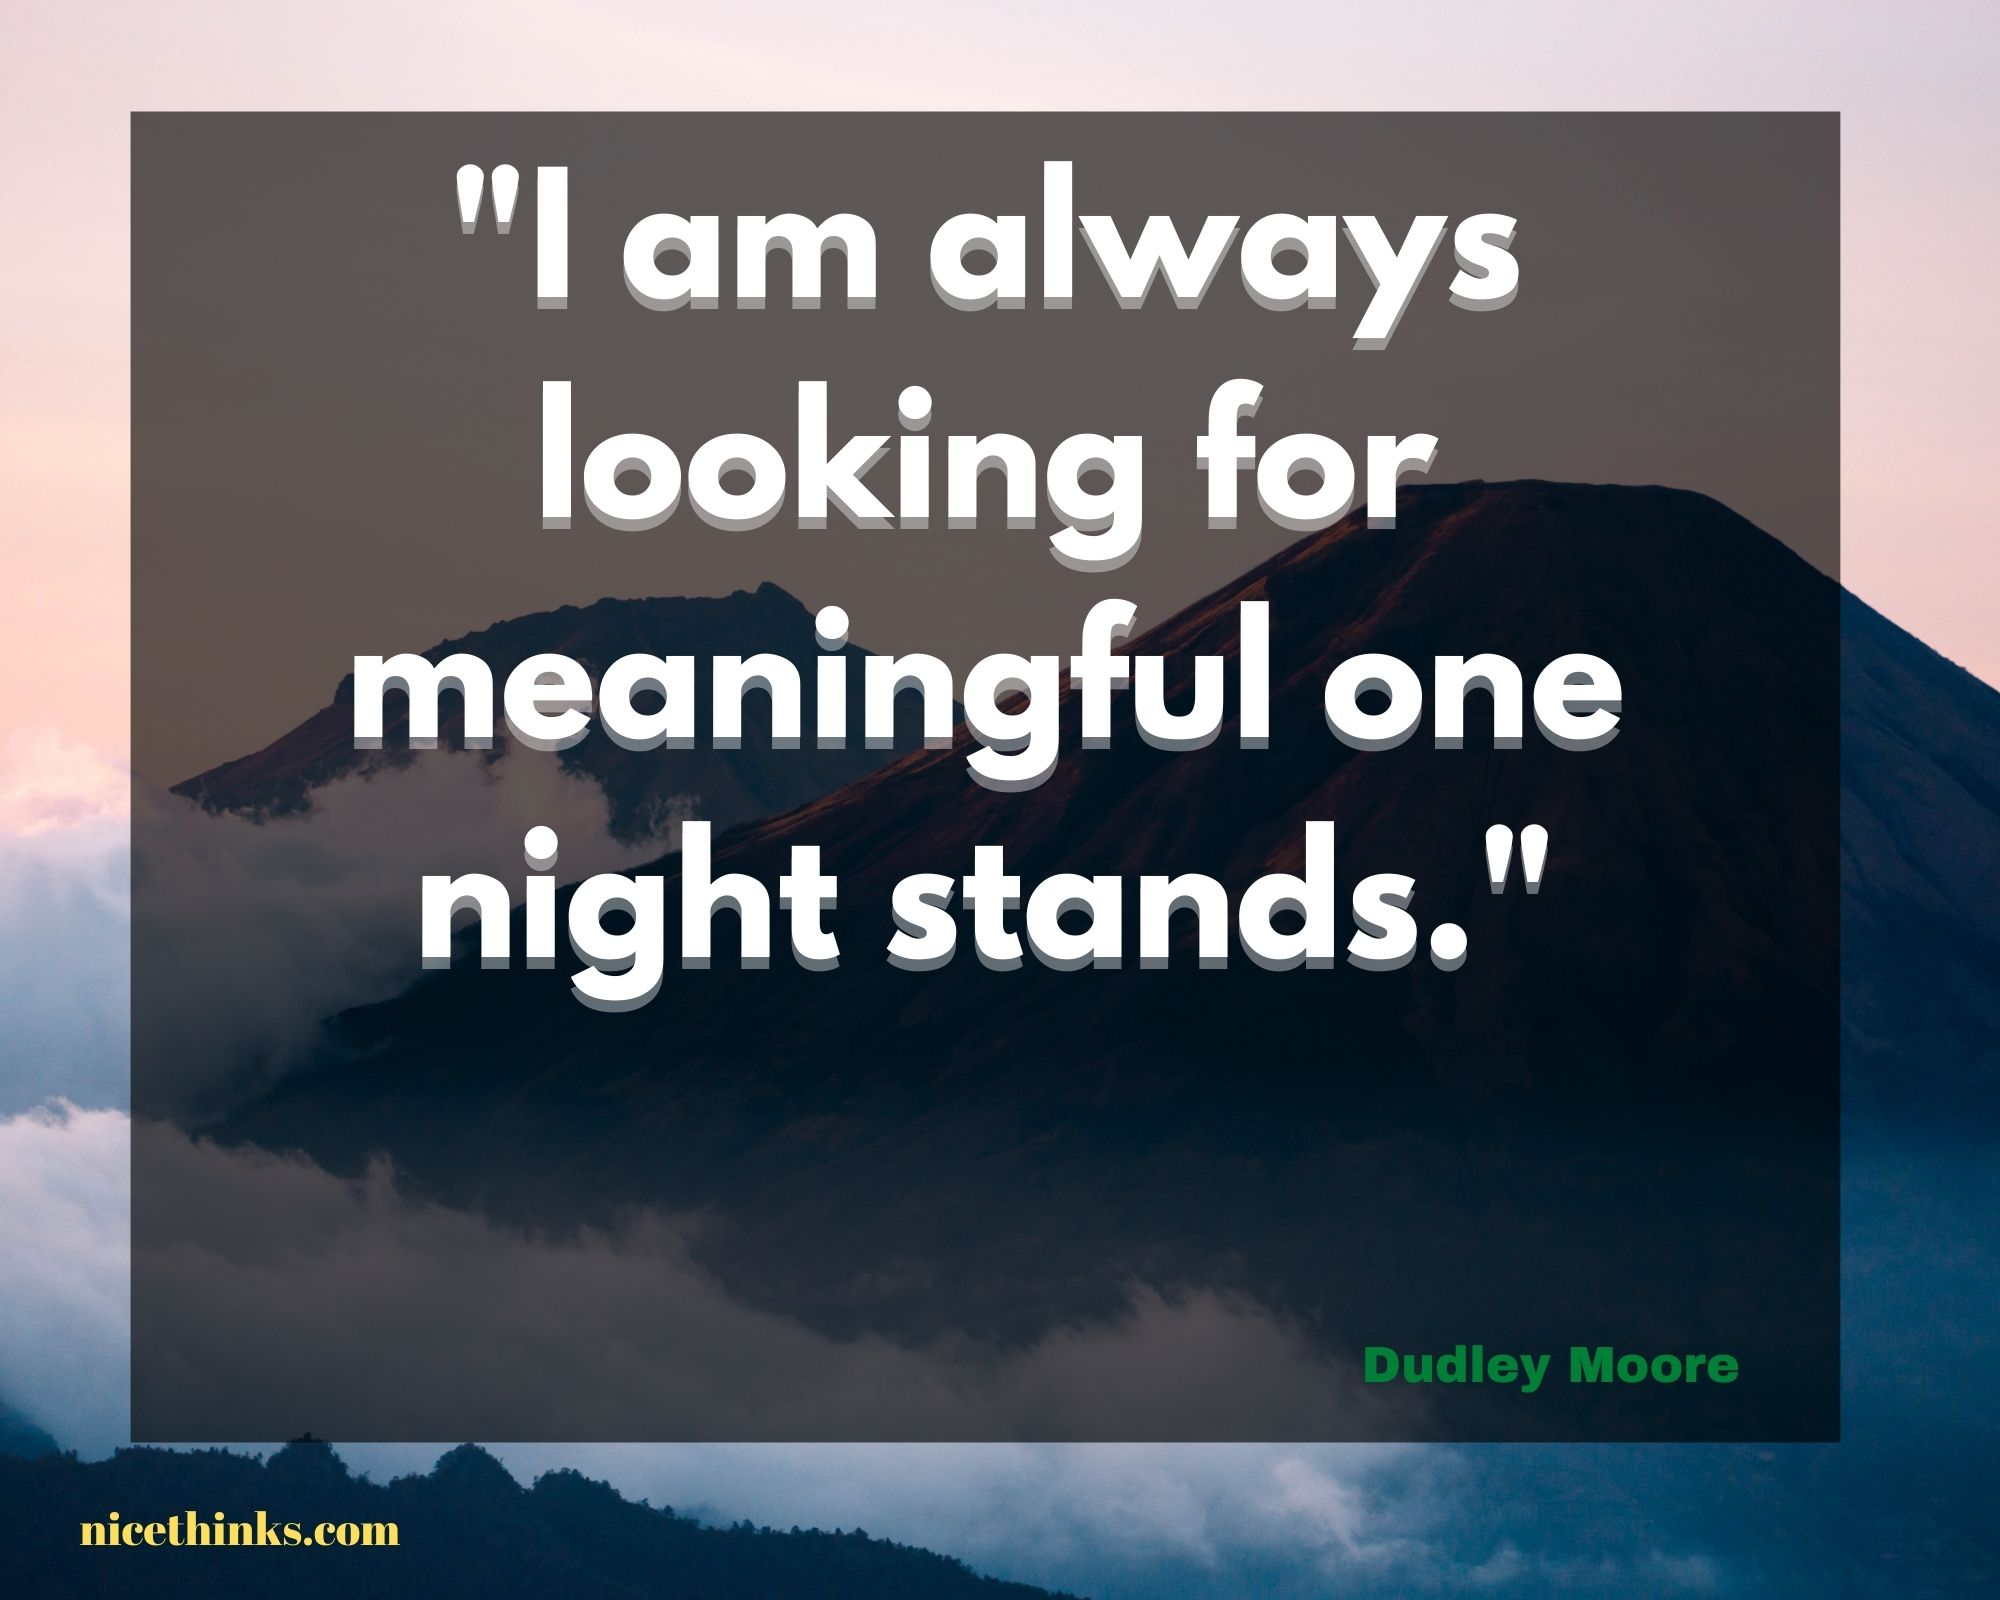 Quote by Dudley Moore